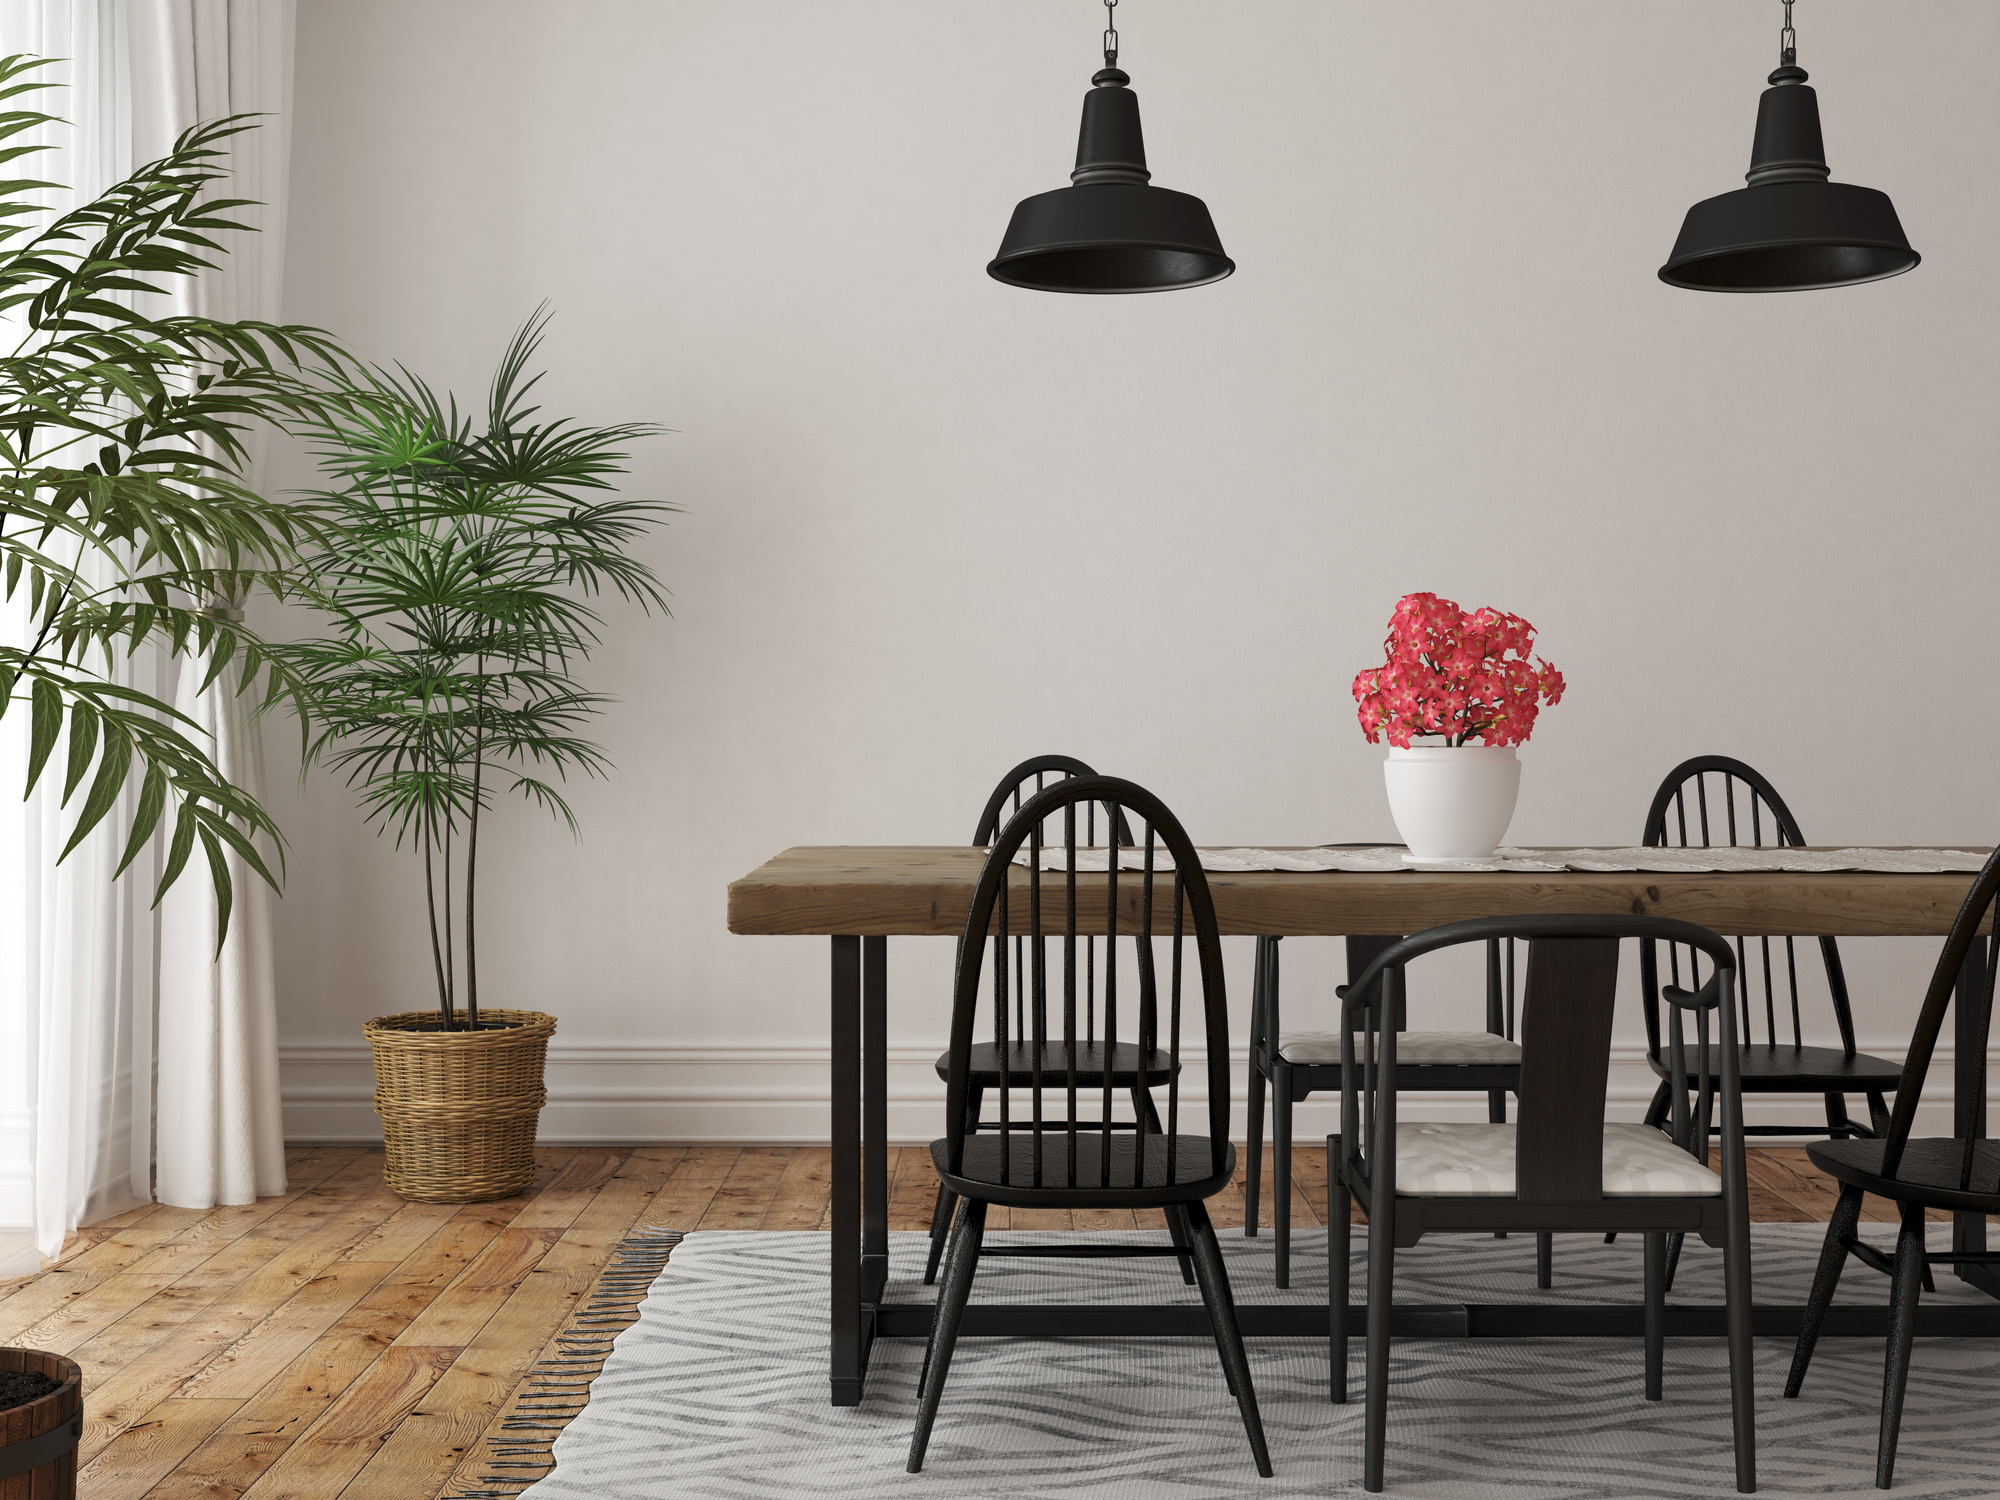 Top 10 Tips For Choosing The Right Dining Table For Your Home